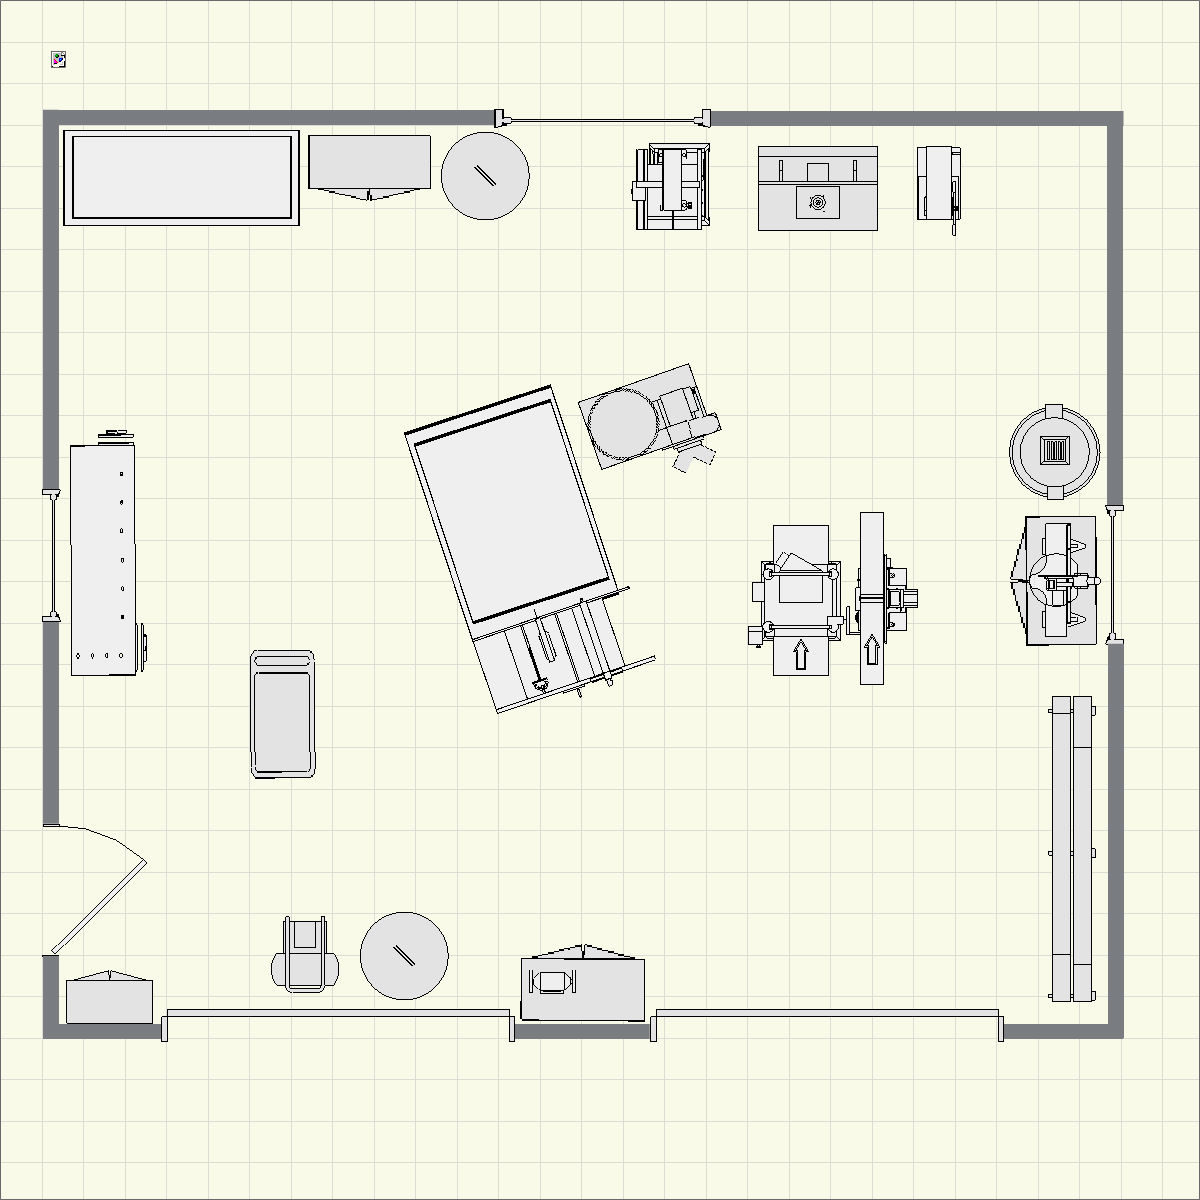 Asa 39 s 2 car garage shop finewoodworking for Garage plans with shop space